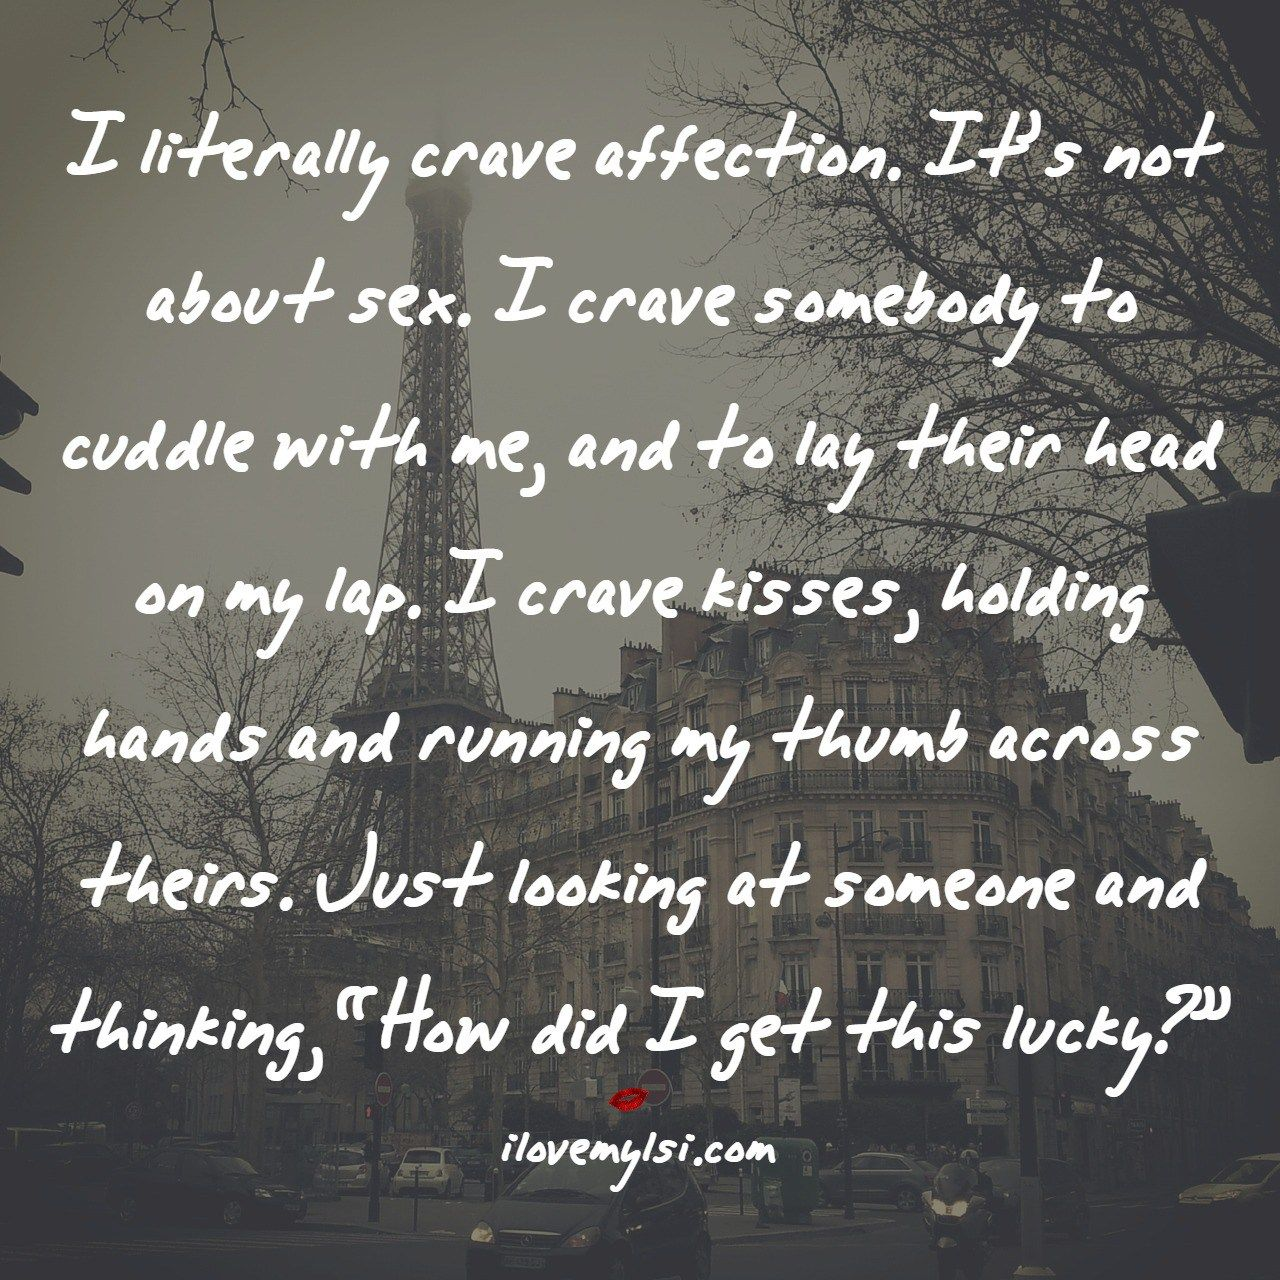 I Crave Affection Affection Quotes I Crave You Quotes